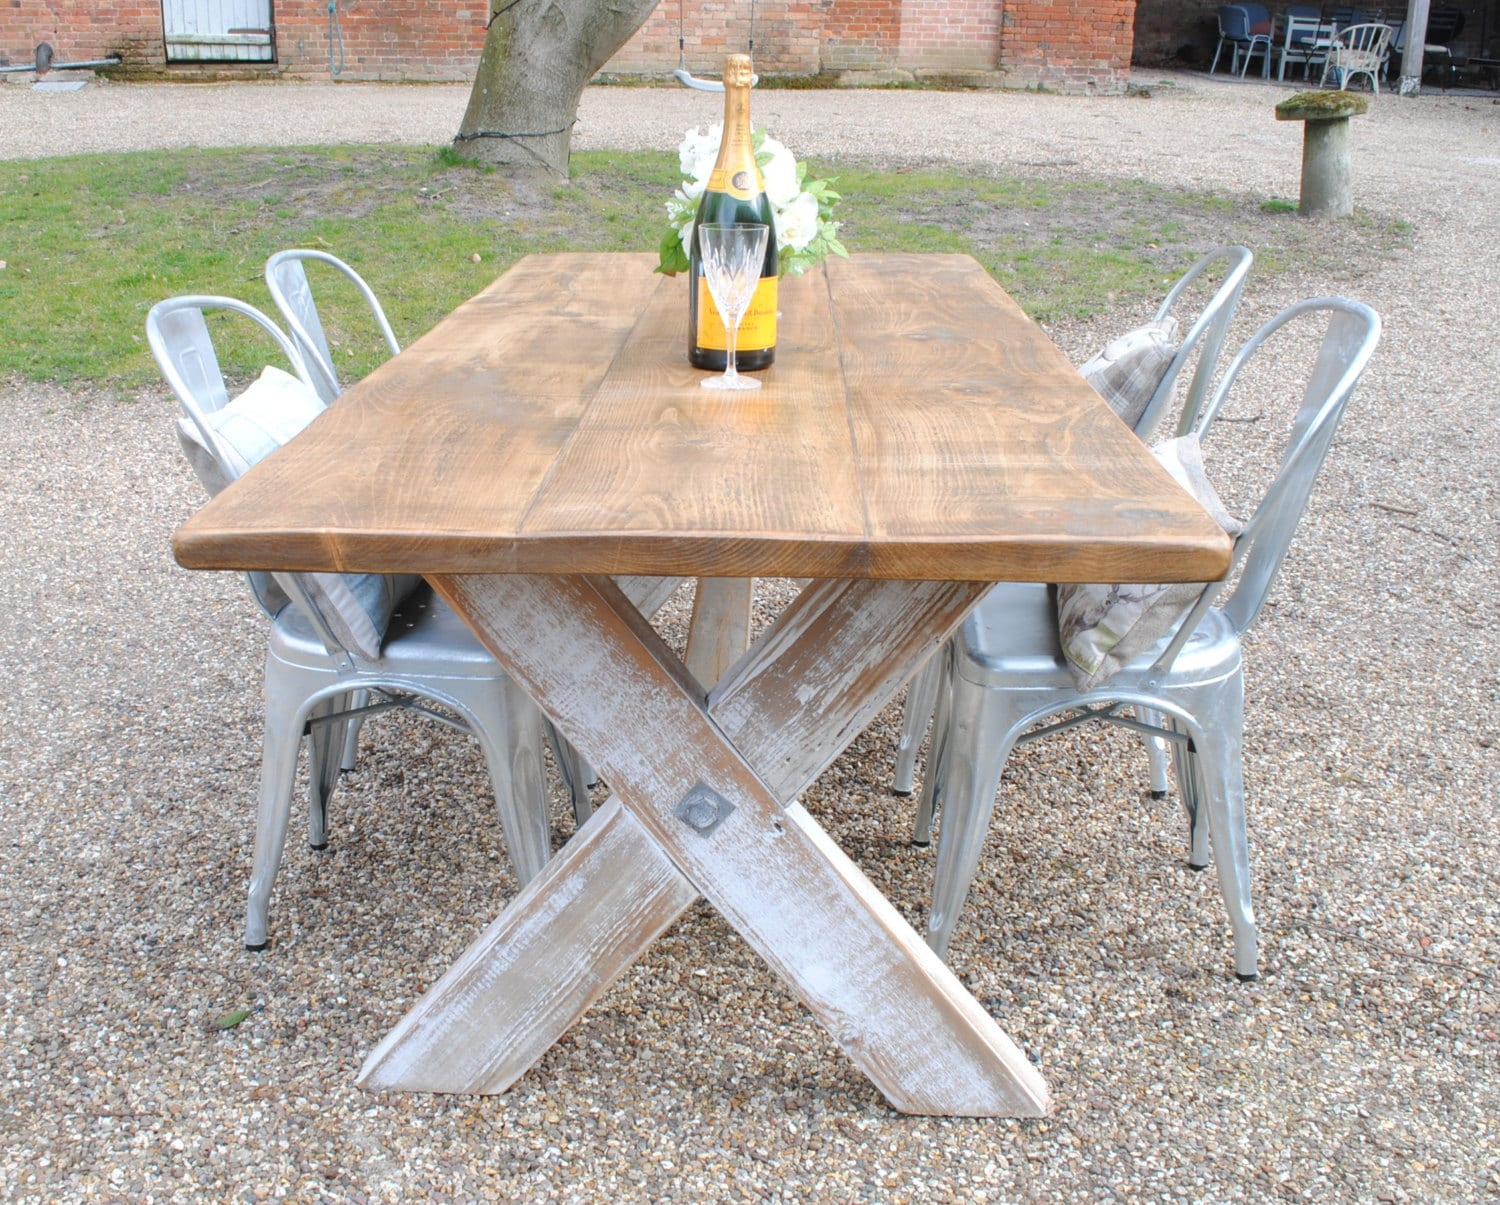 X Frame Rustic Reclaimed Wood Hand Made Dining Table Etsy